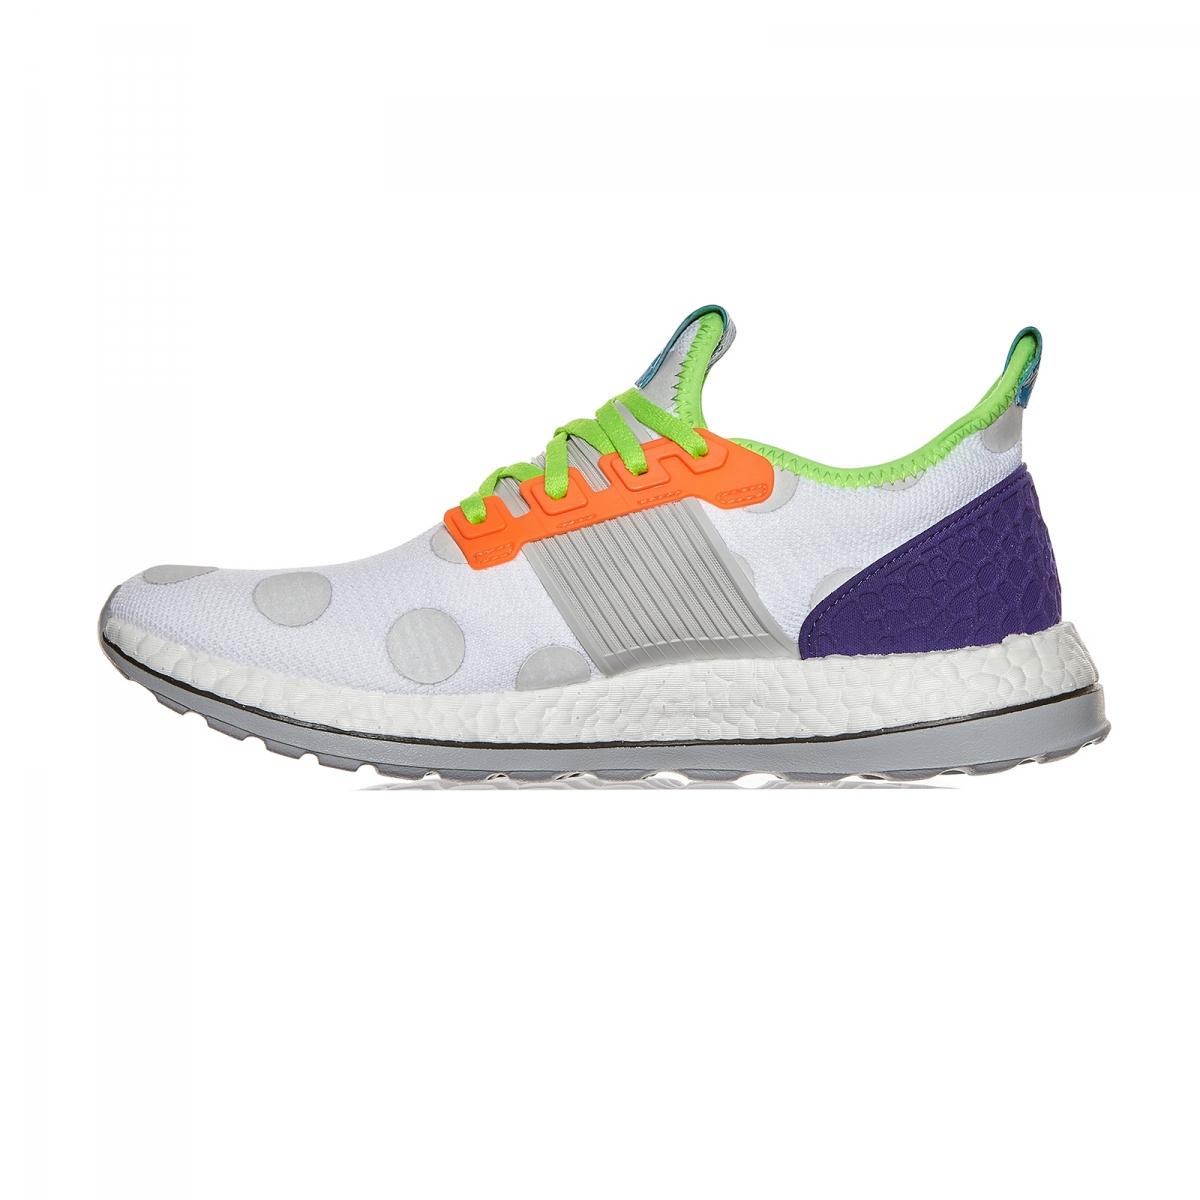 Adidas Originals Pure Boost Zg Kolor Sneakers In White Lyst